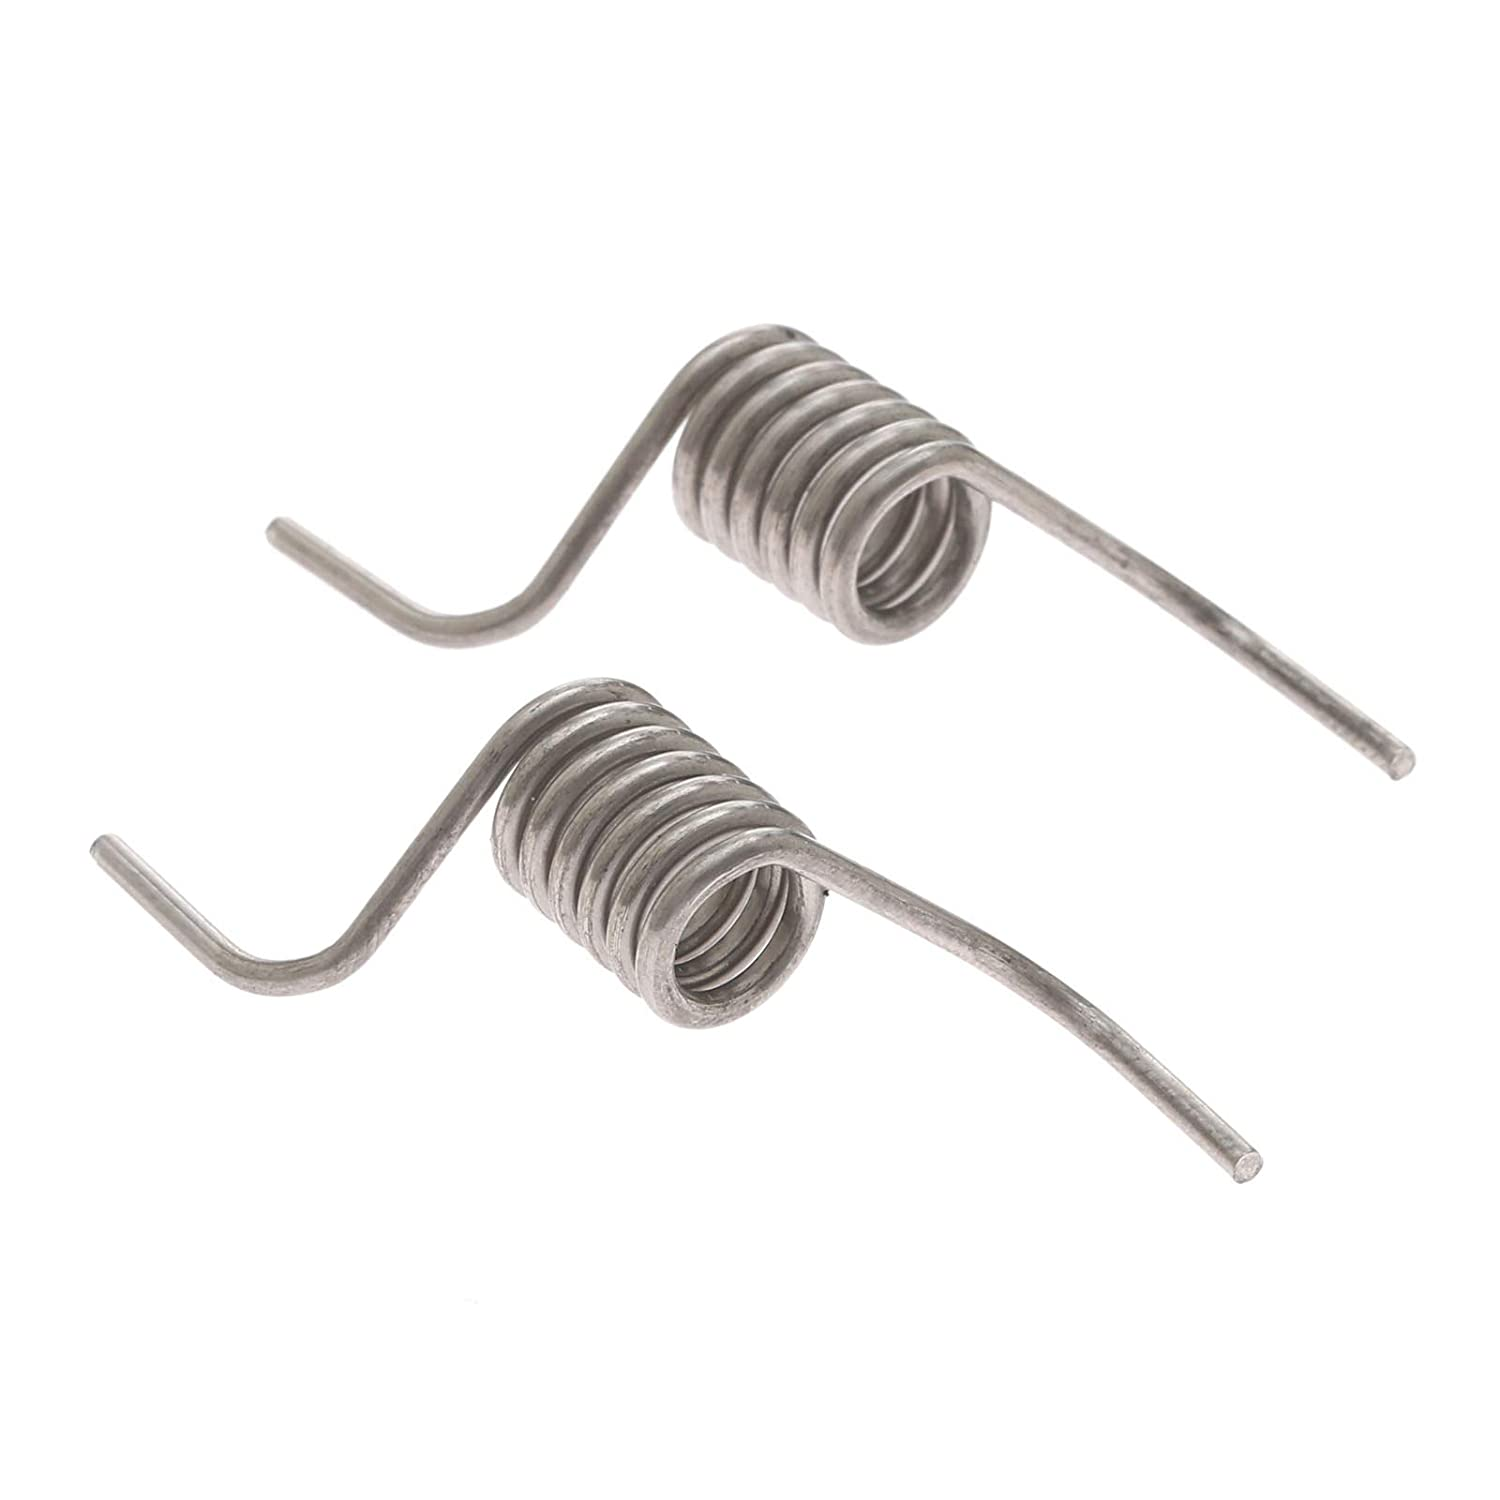 Dreld MHY62044106 Refrigerator Door Spring, Replaces 2676261 MHY62044104 AP5657415 PS6012670, Compatible with LG Kenmore